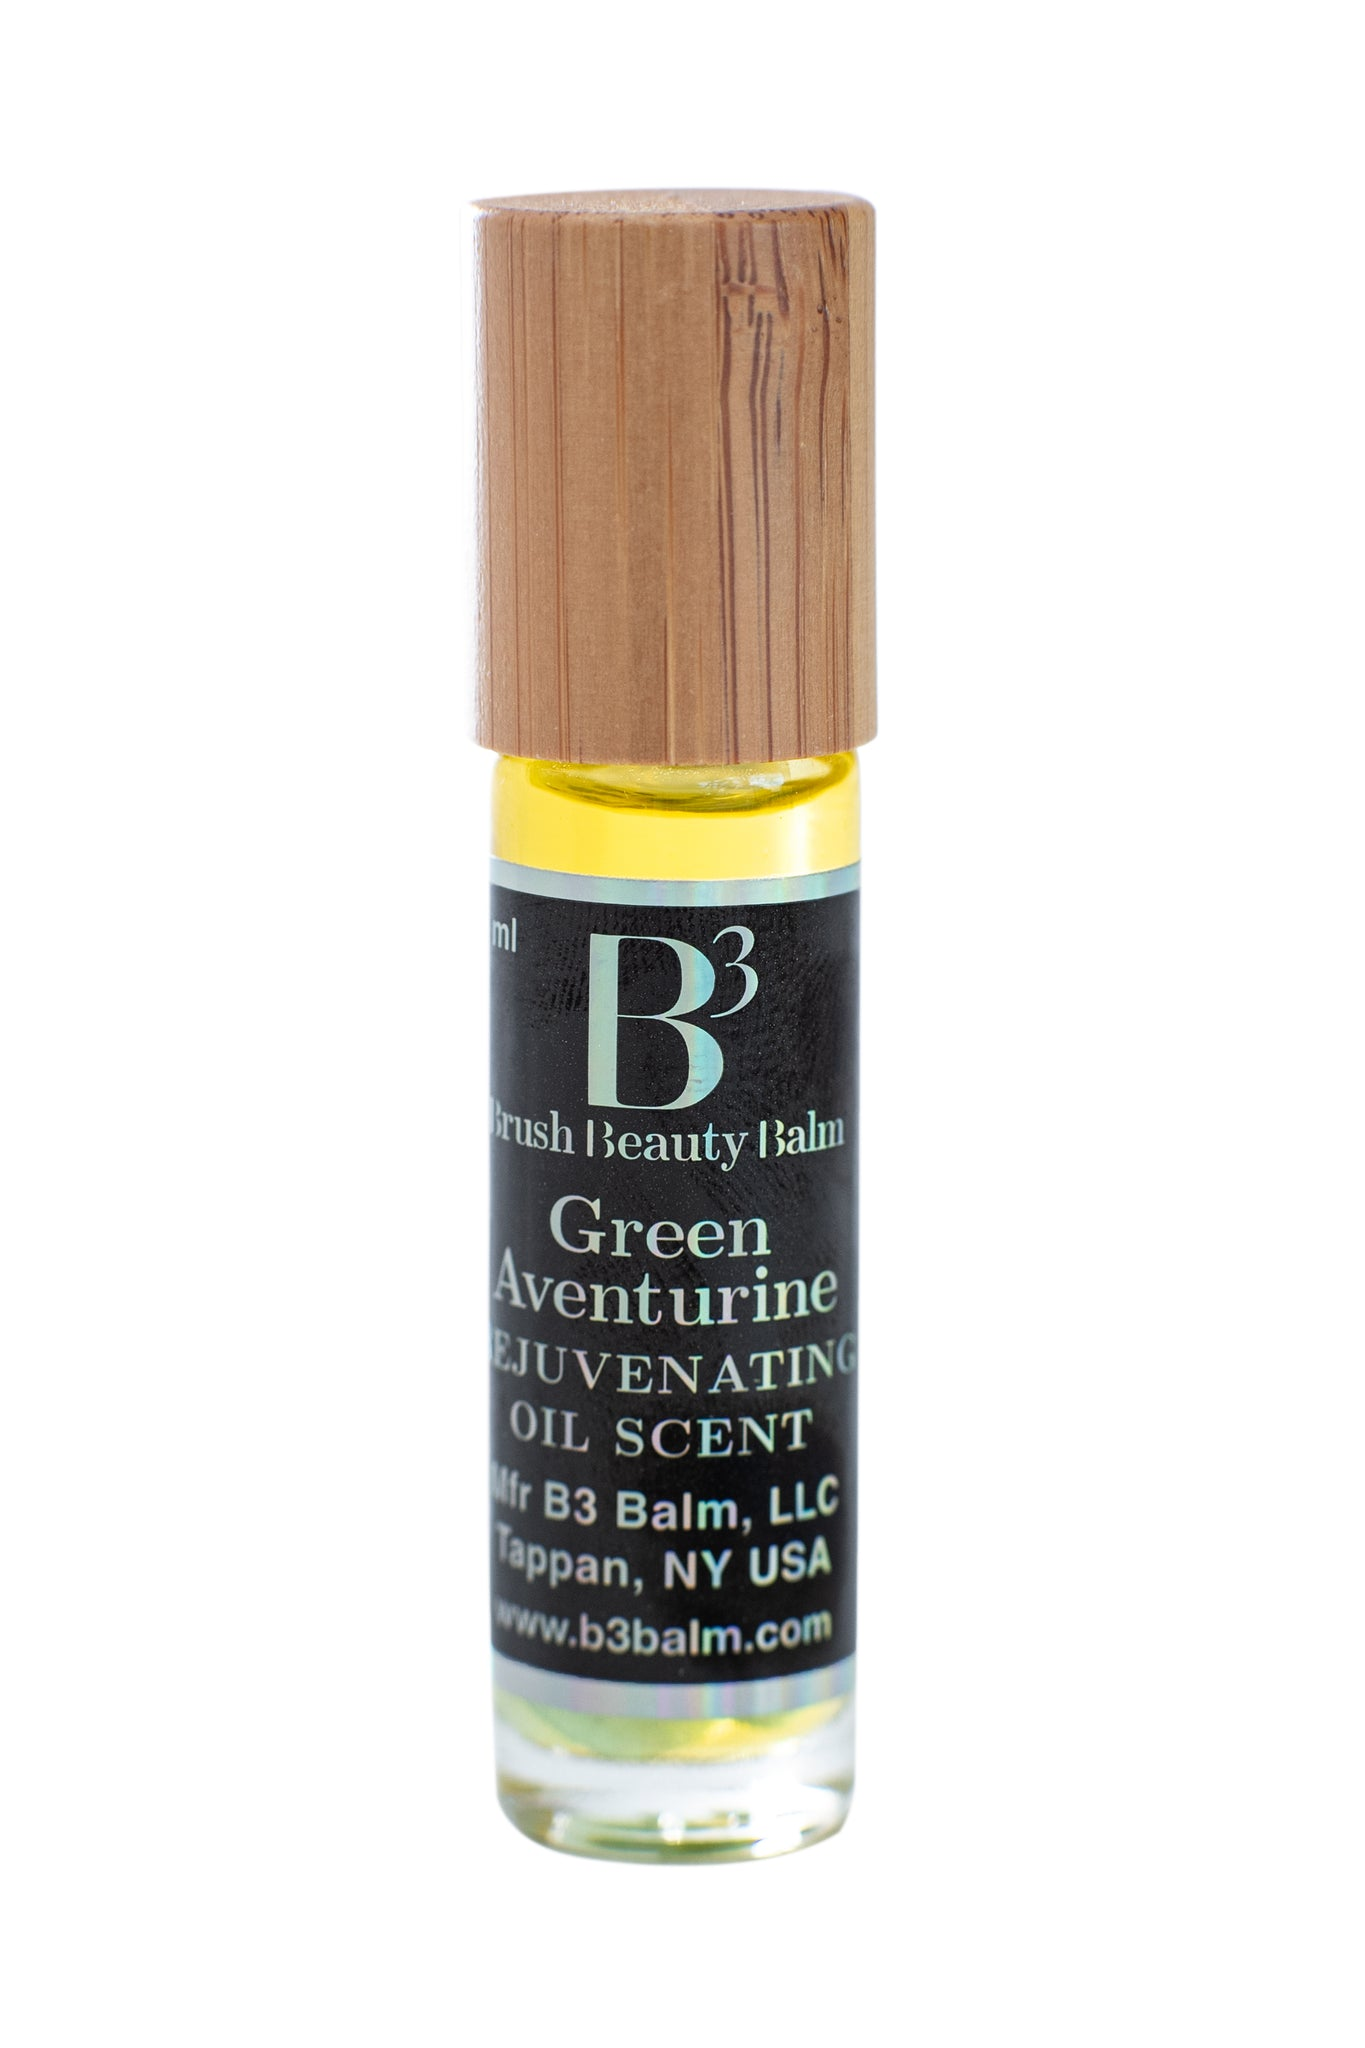 GREEN AVENTURINE REJUVENATING OIL SCENT